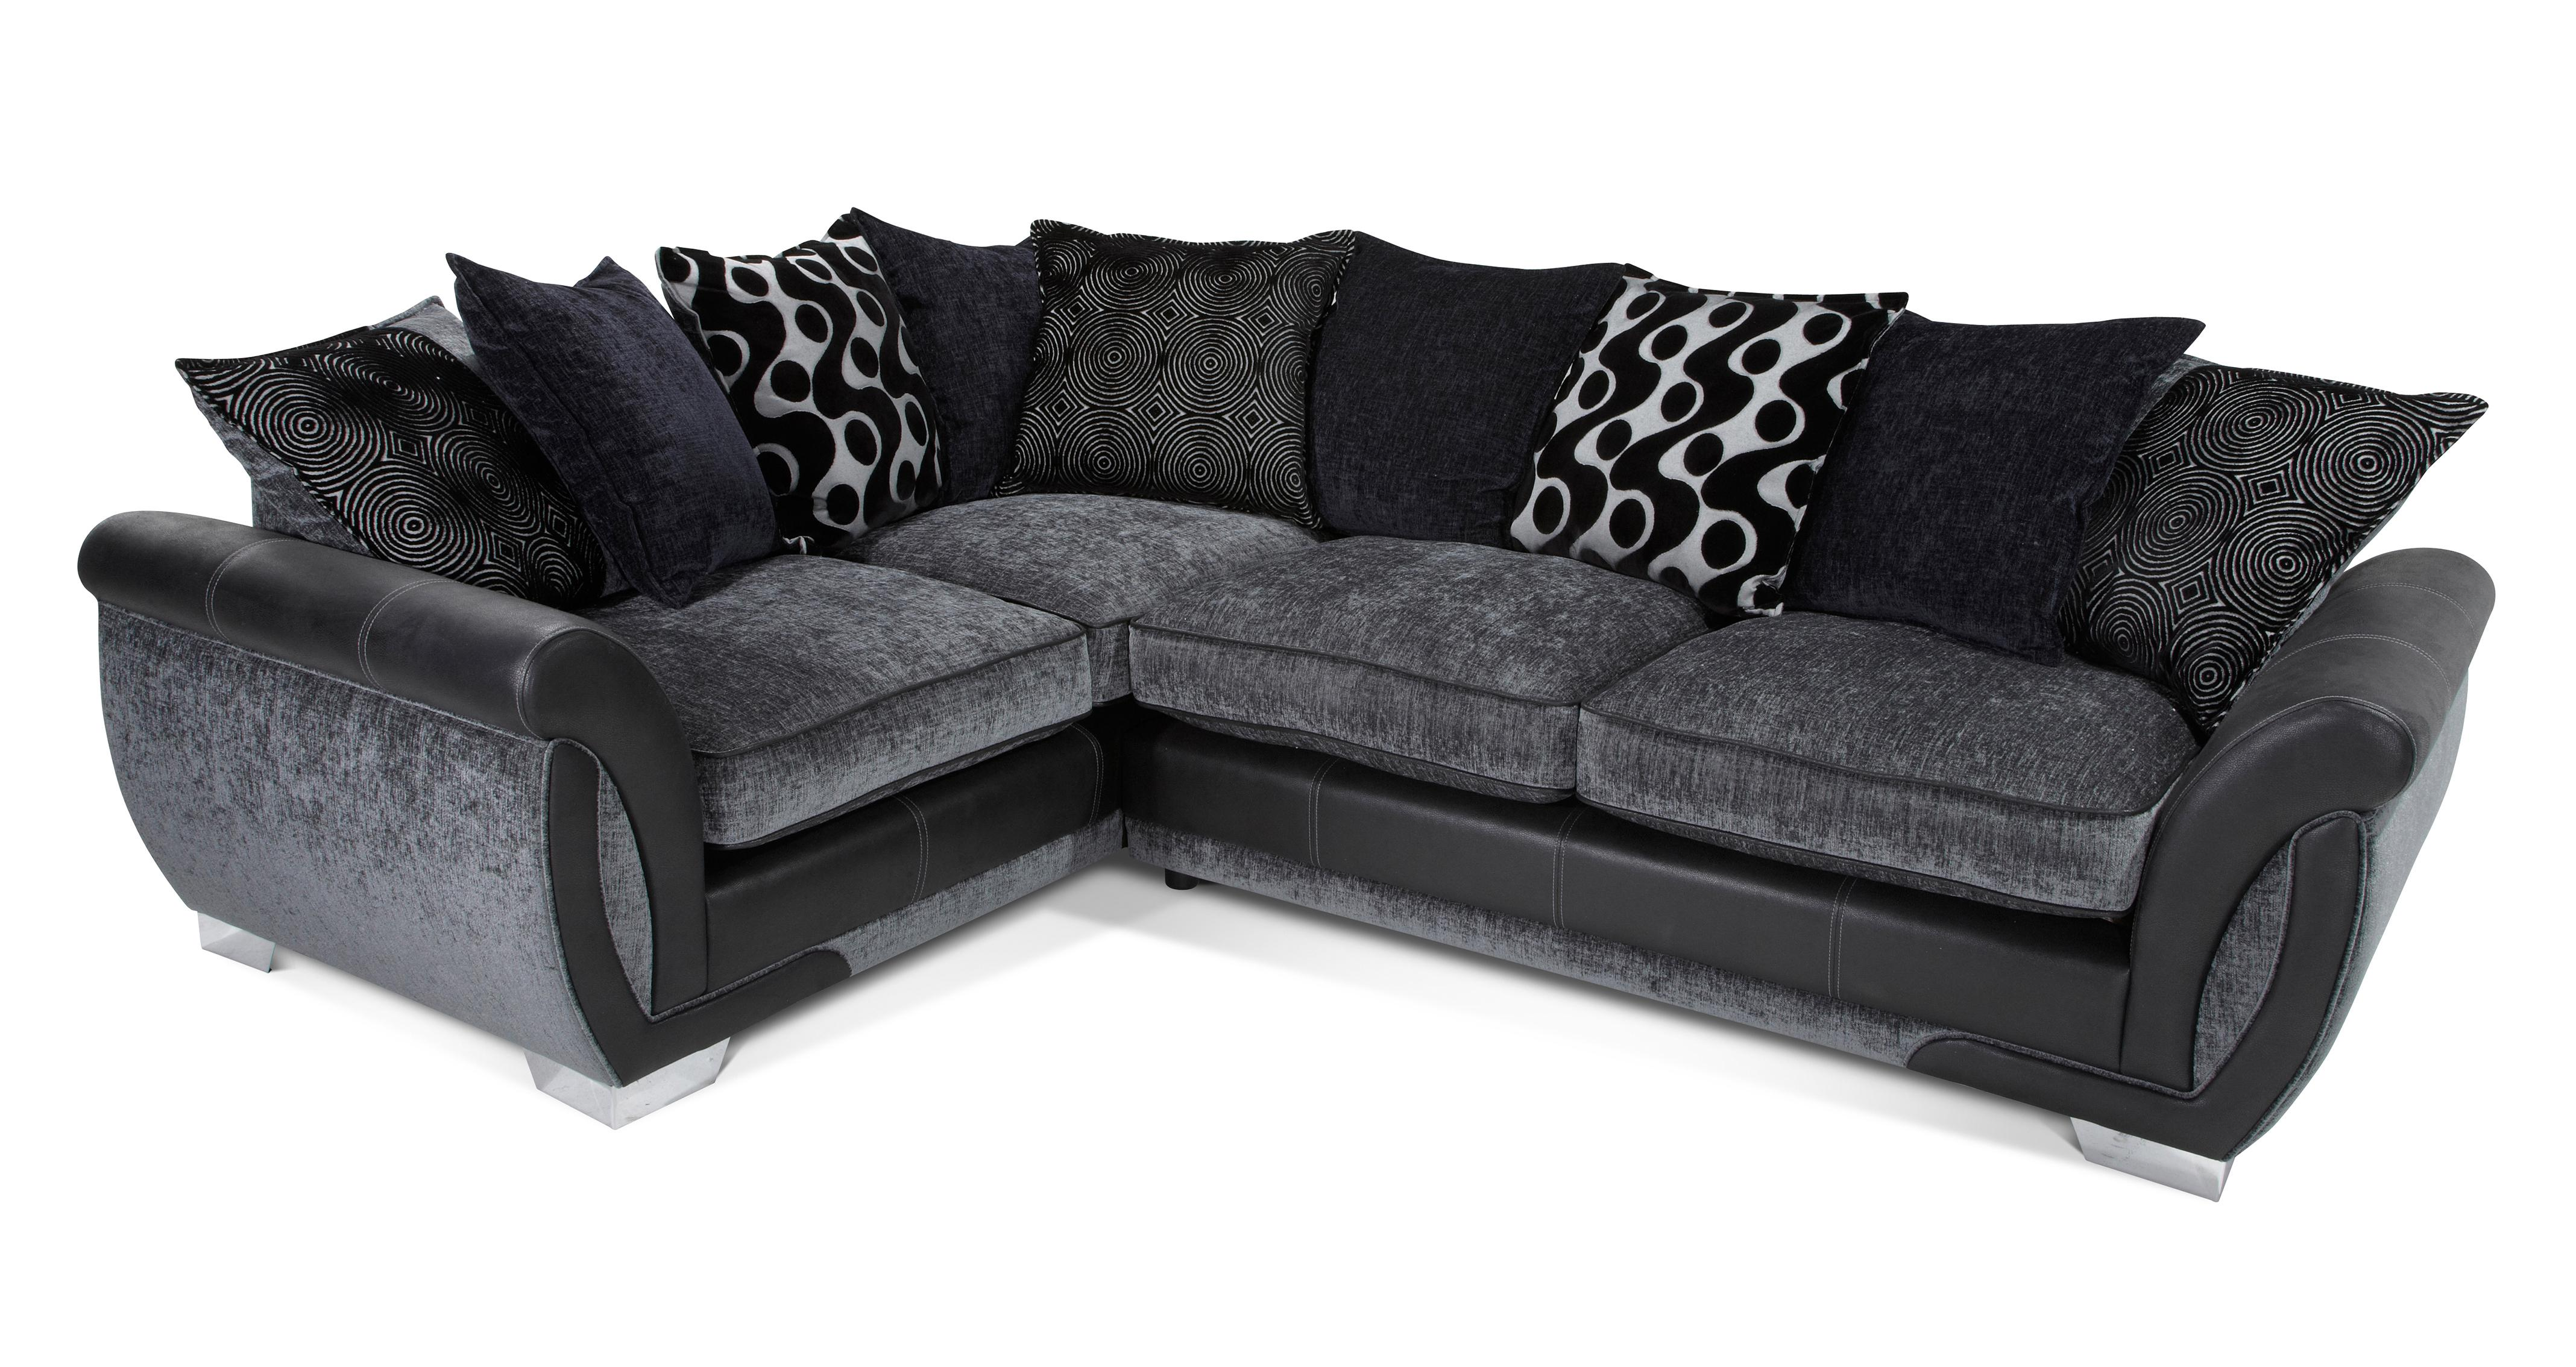 Sofas On Finance No Deposit Uk picture on right hand facing 3 seater pillow back corner sofa talia 100920151p  1 with Sofas On Finance No Deposit Uk, sofa 7b3ab9e2d4fa8d1d199173a29383b61e